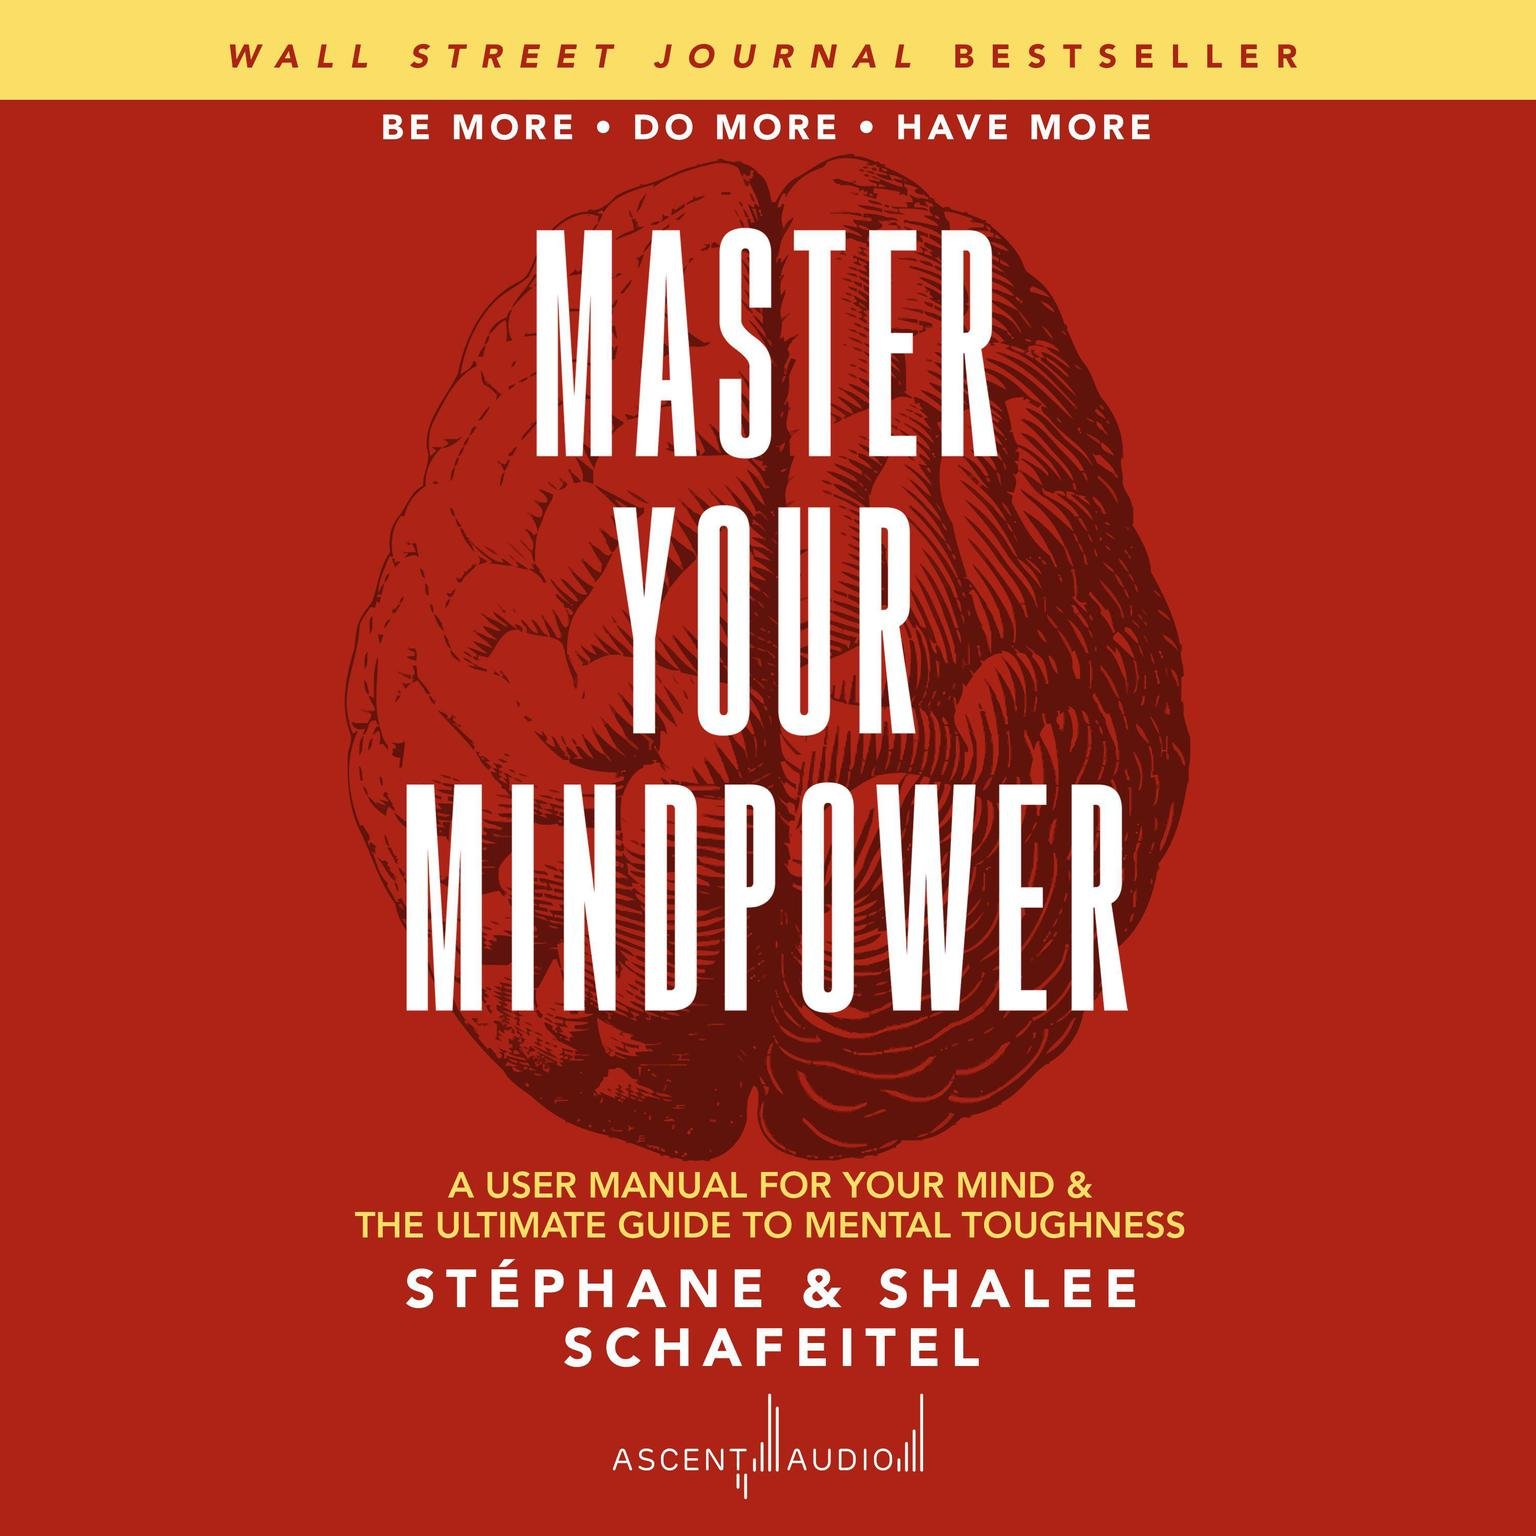 Master Your Mindpower: A User Manual For Your Mind & The Ultimate Guide To Mental Toughness Audiobook, by Stéphane Schafeitel